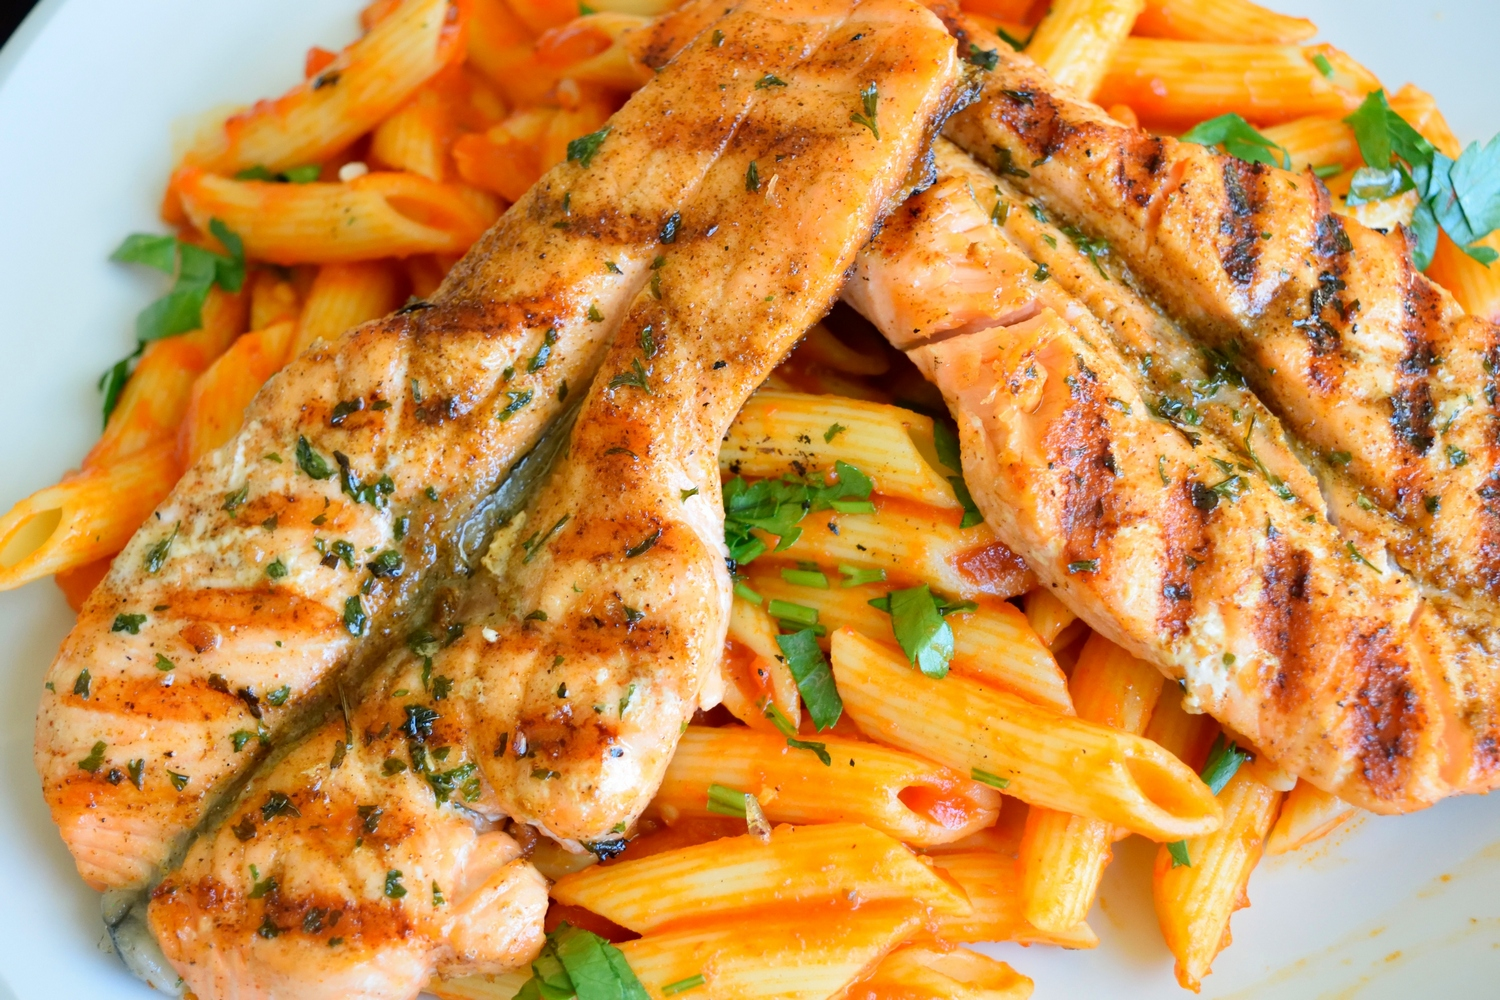 penne pasta topped with grilled chicken